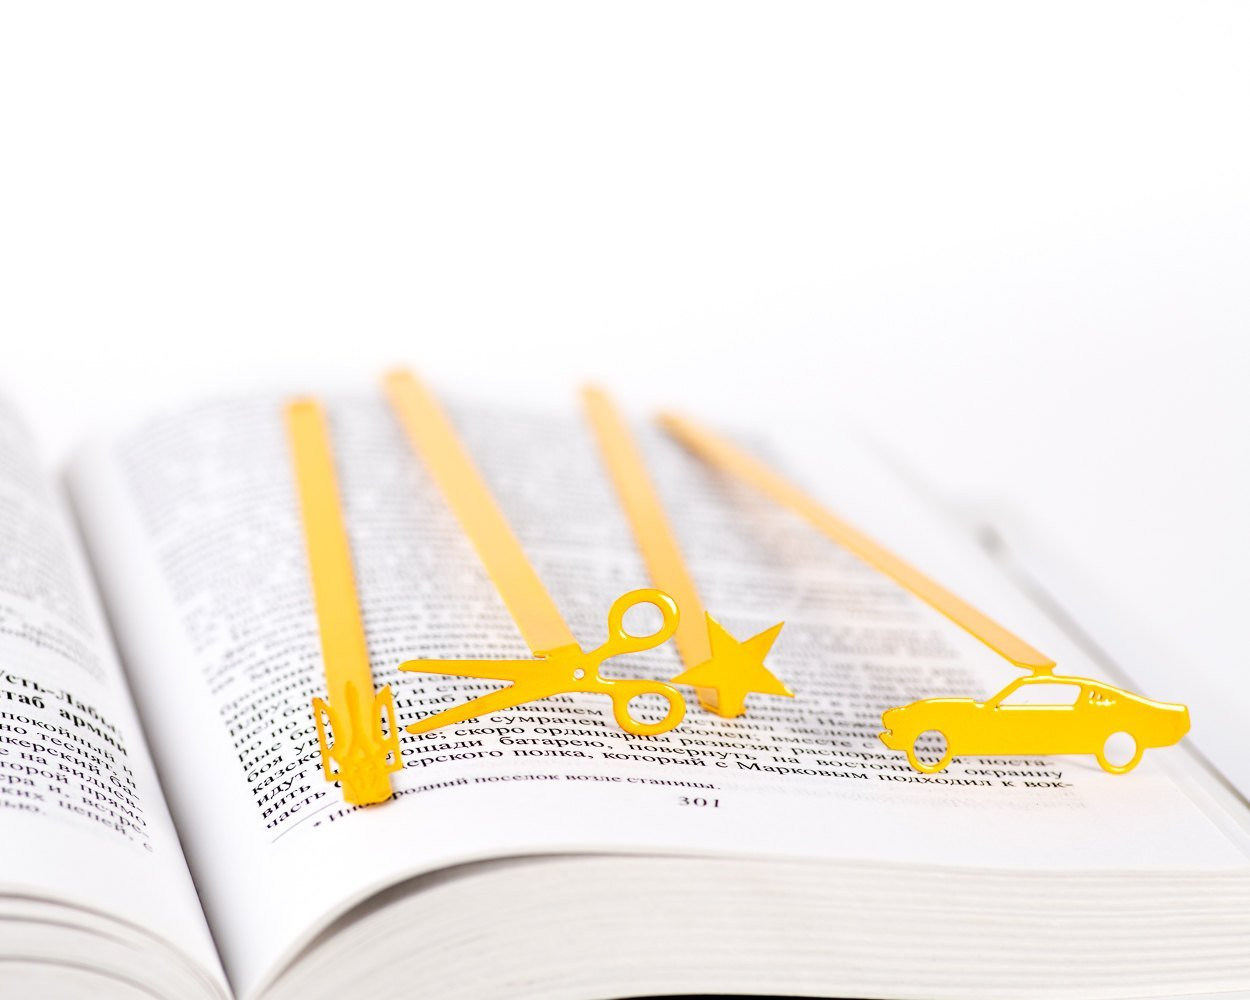 Metal Book Bookmark Scissors //  Unique design book accessory // YELLOW // Stylish present for a book lover // Free shipping - Design Atelier Article